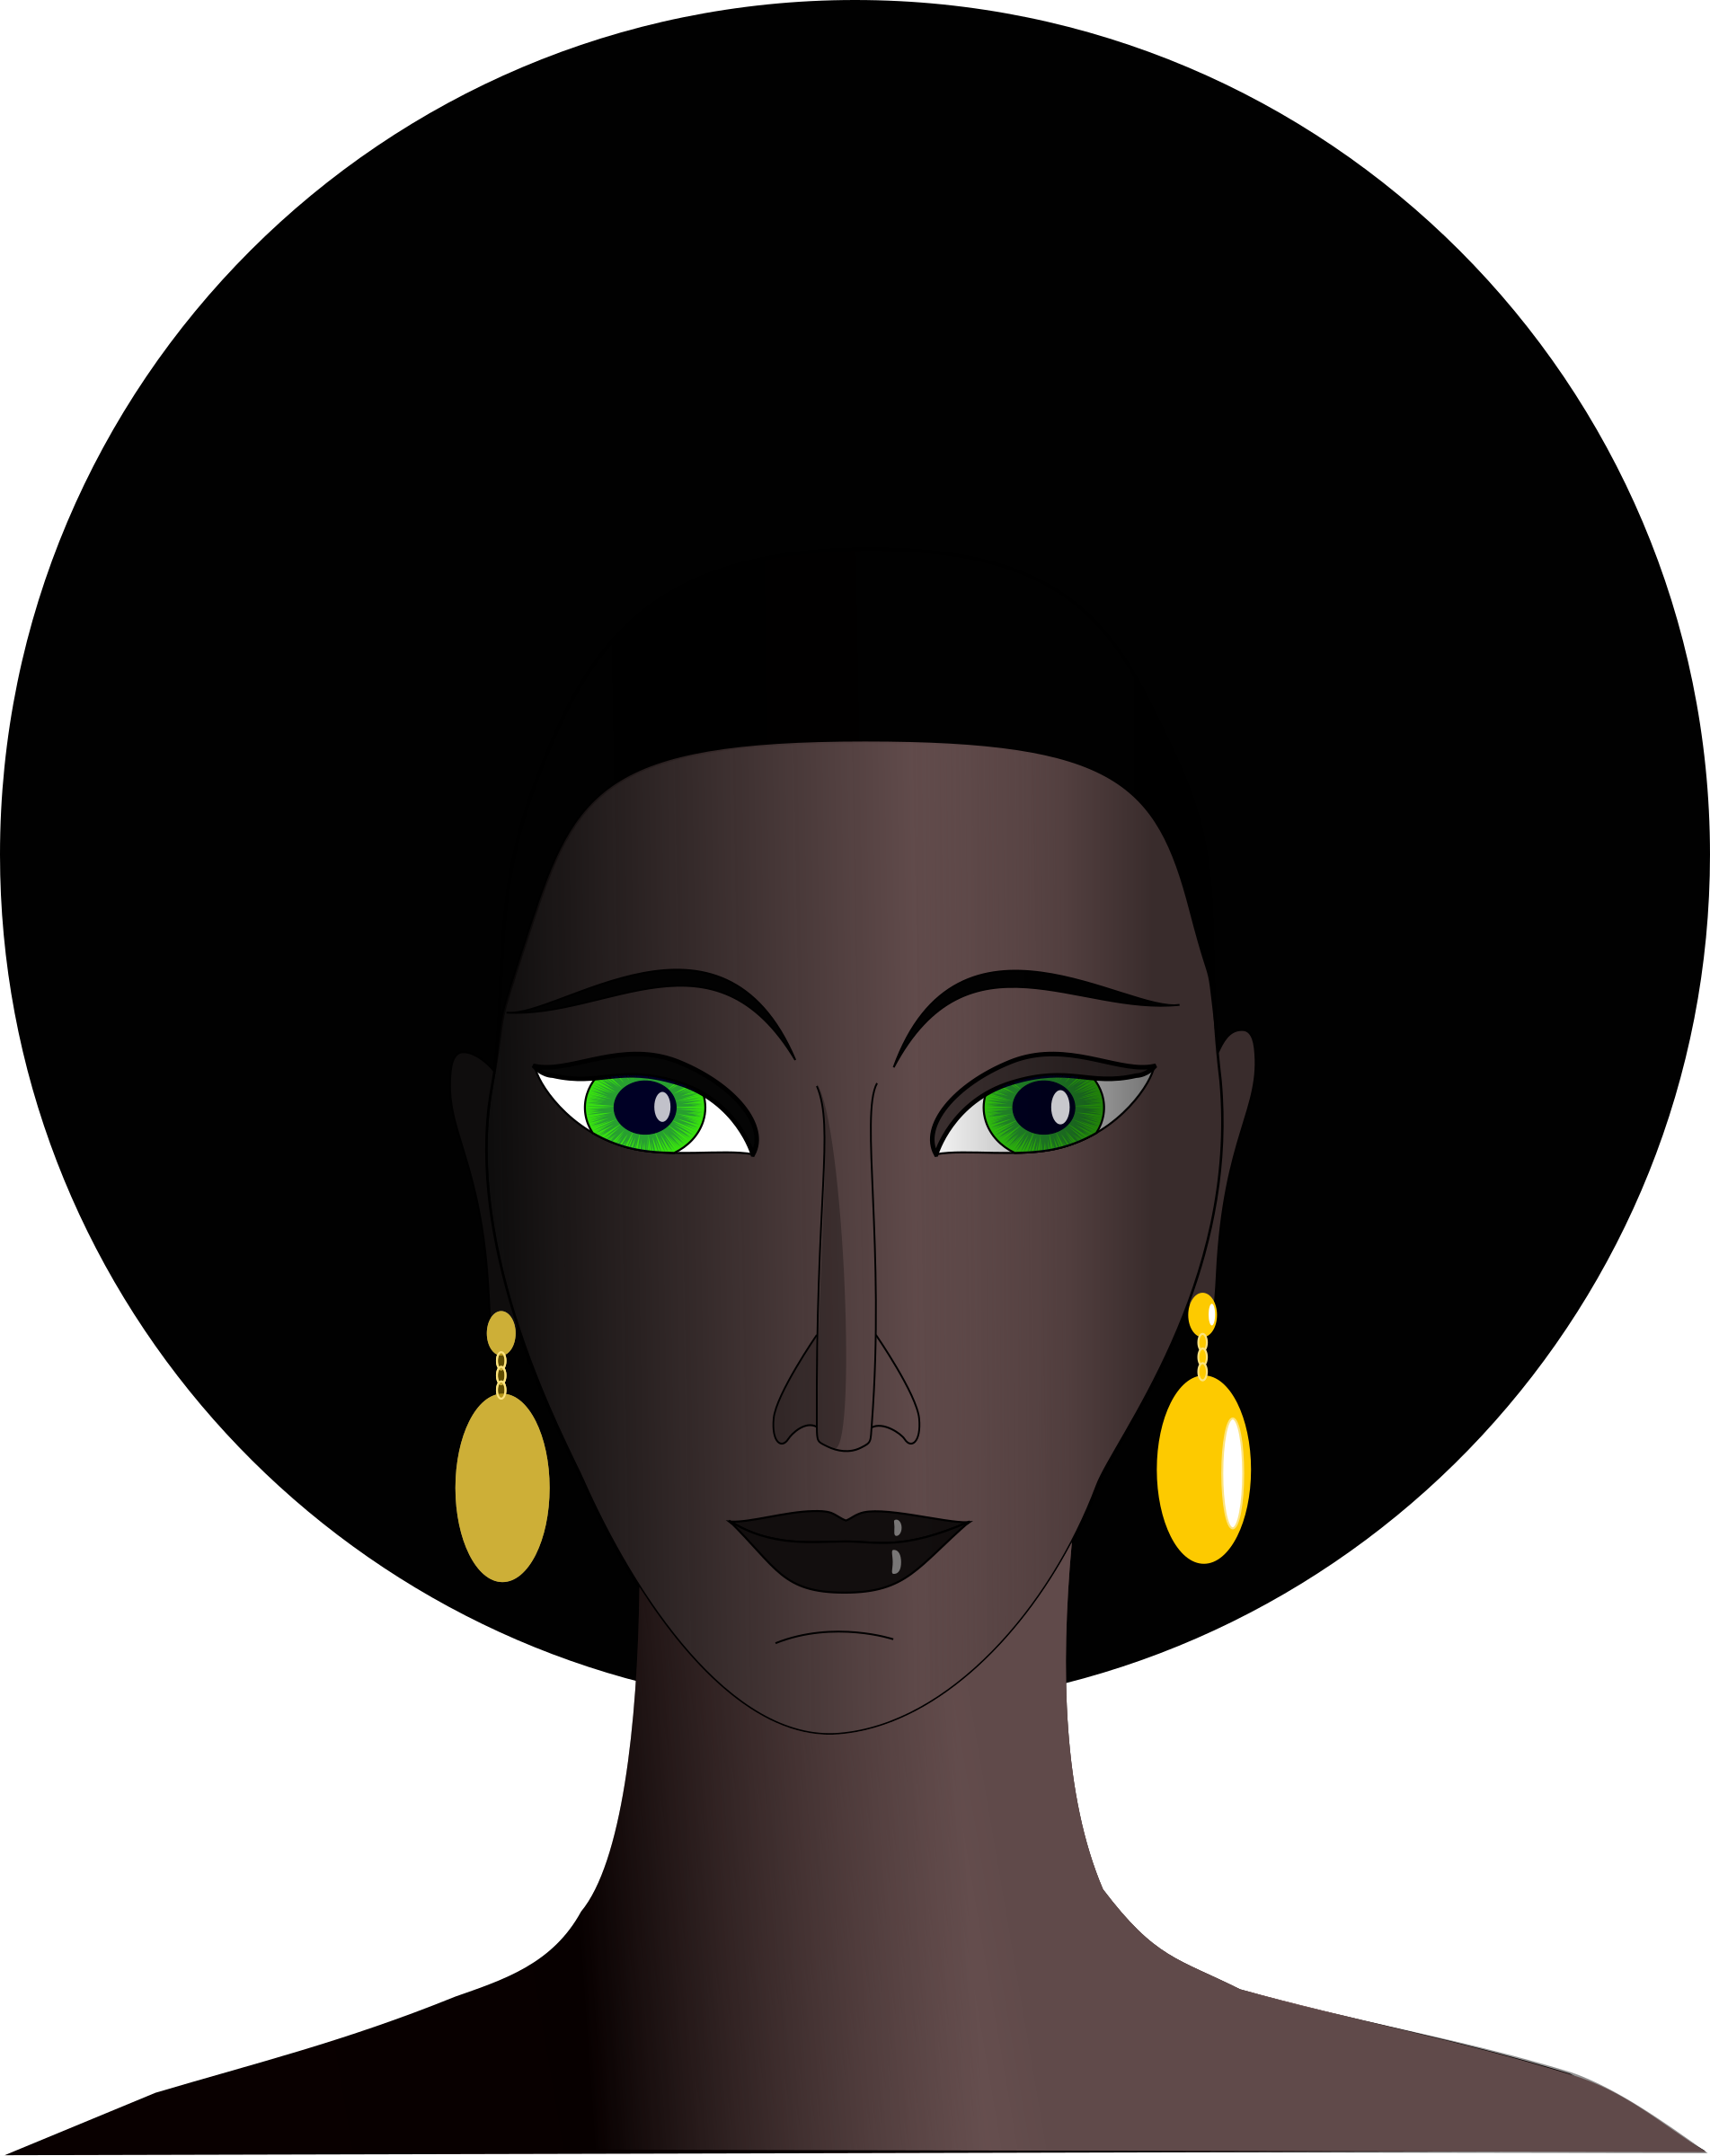 black woman with green eyes by Machovka